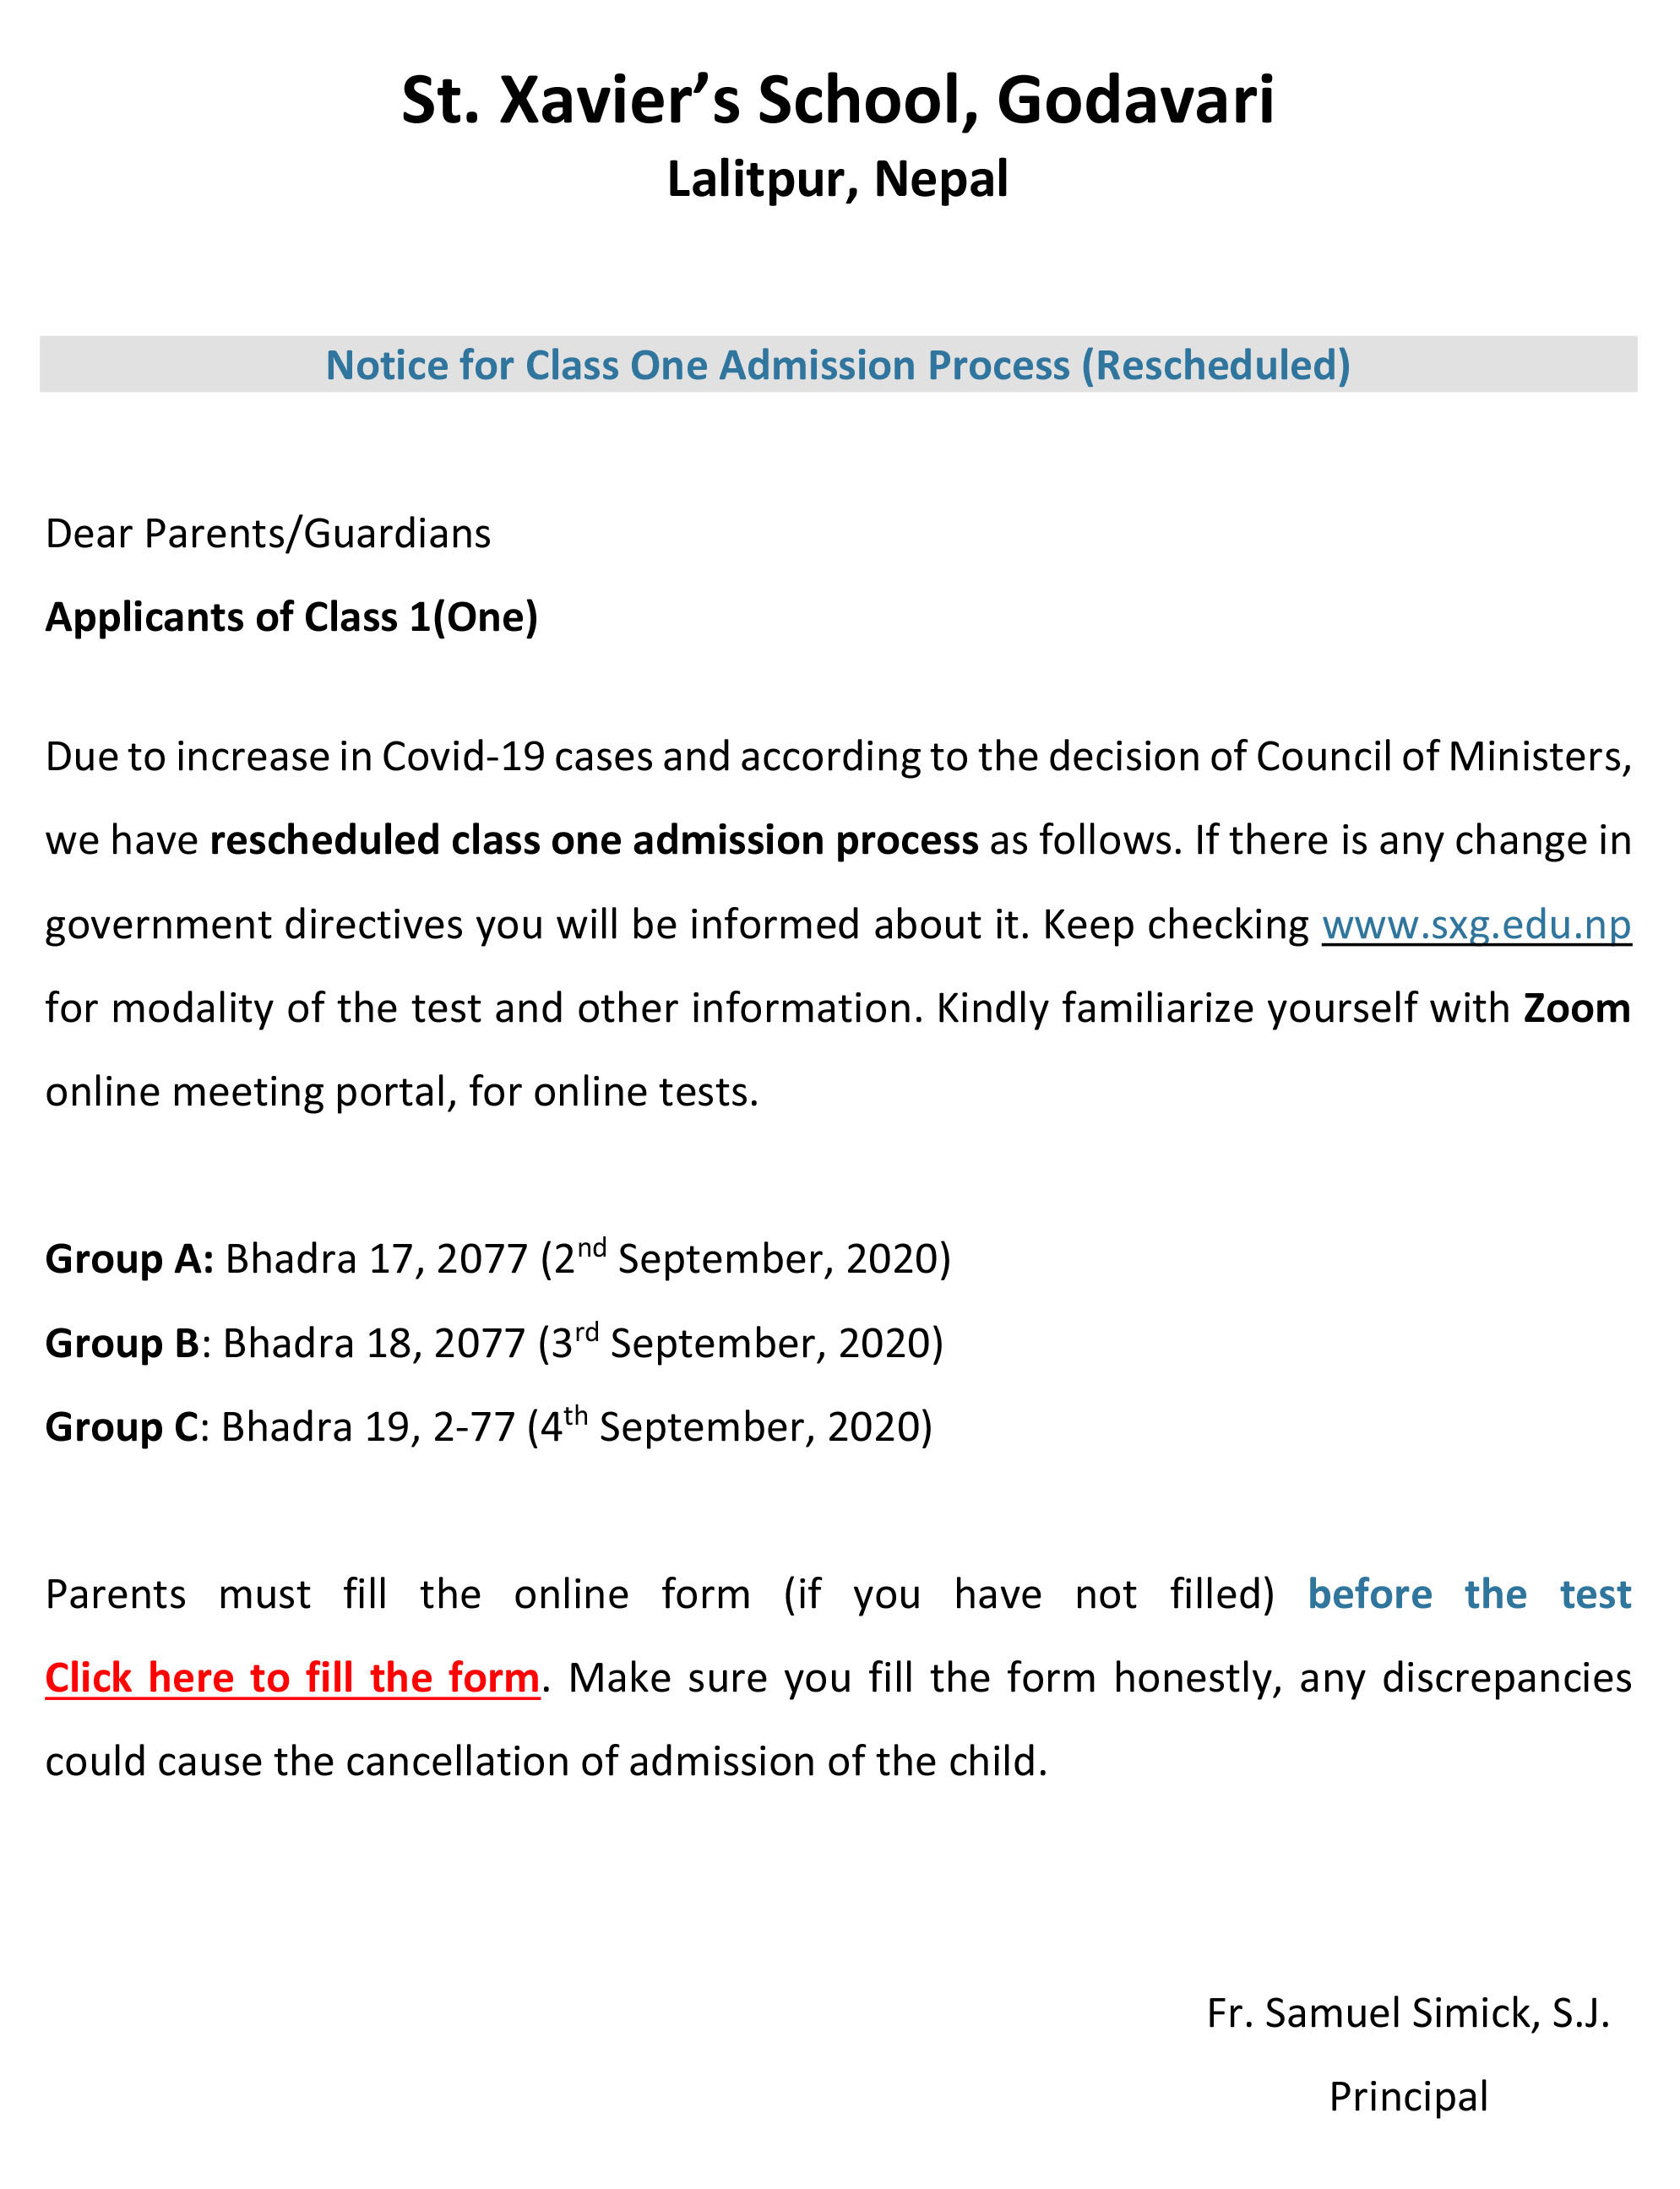 Notice for Class One Admission Process (Rescheduled)